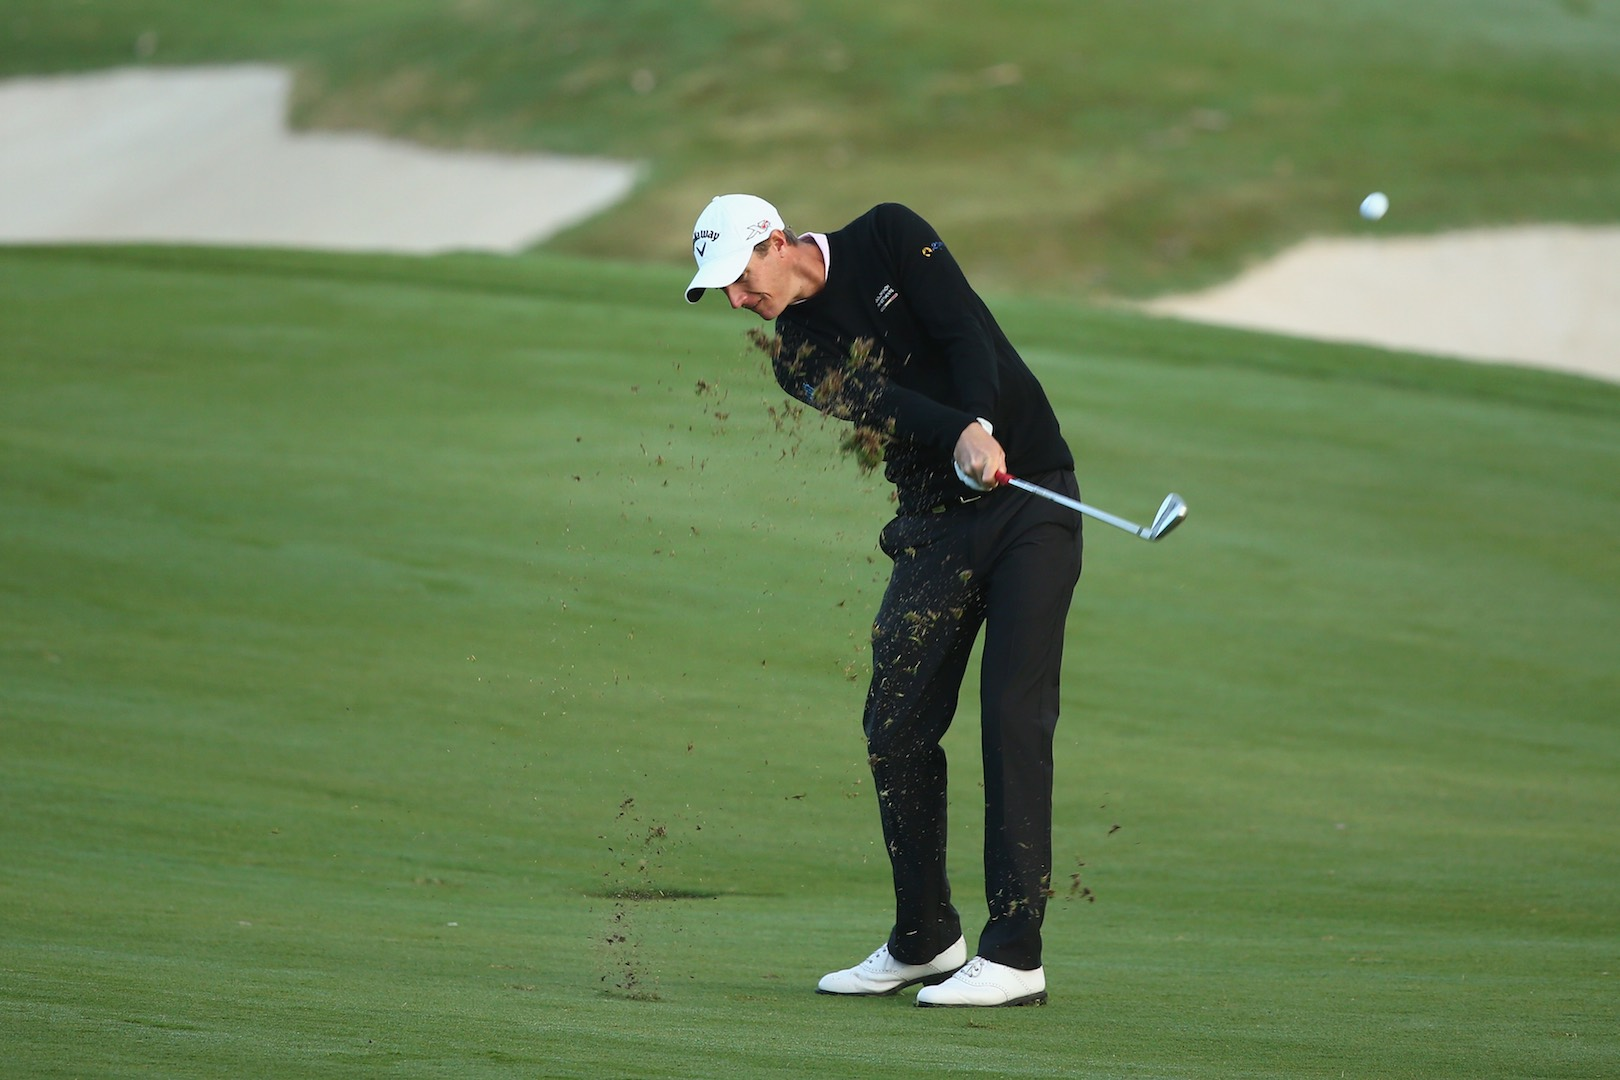 Nicky Colsaerts riding high down under